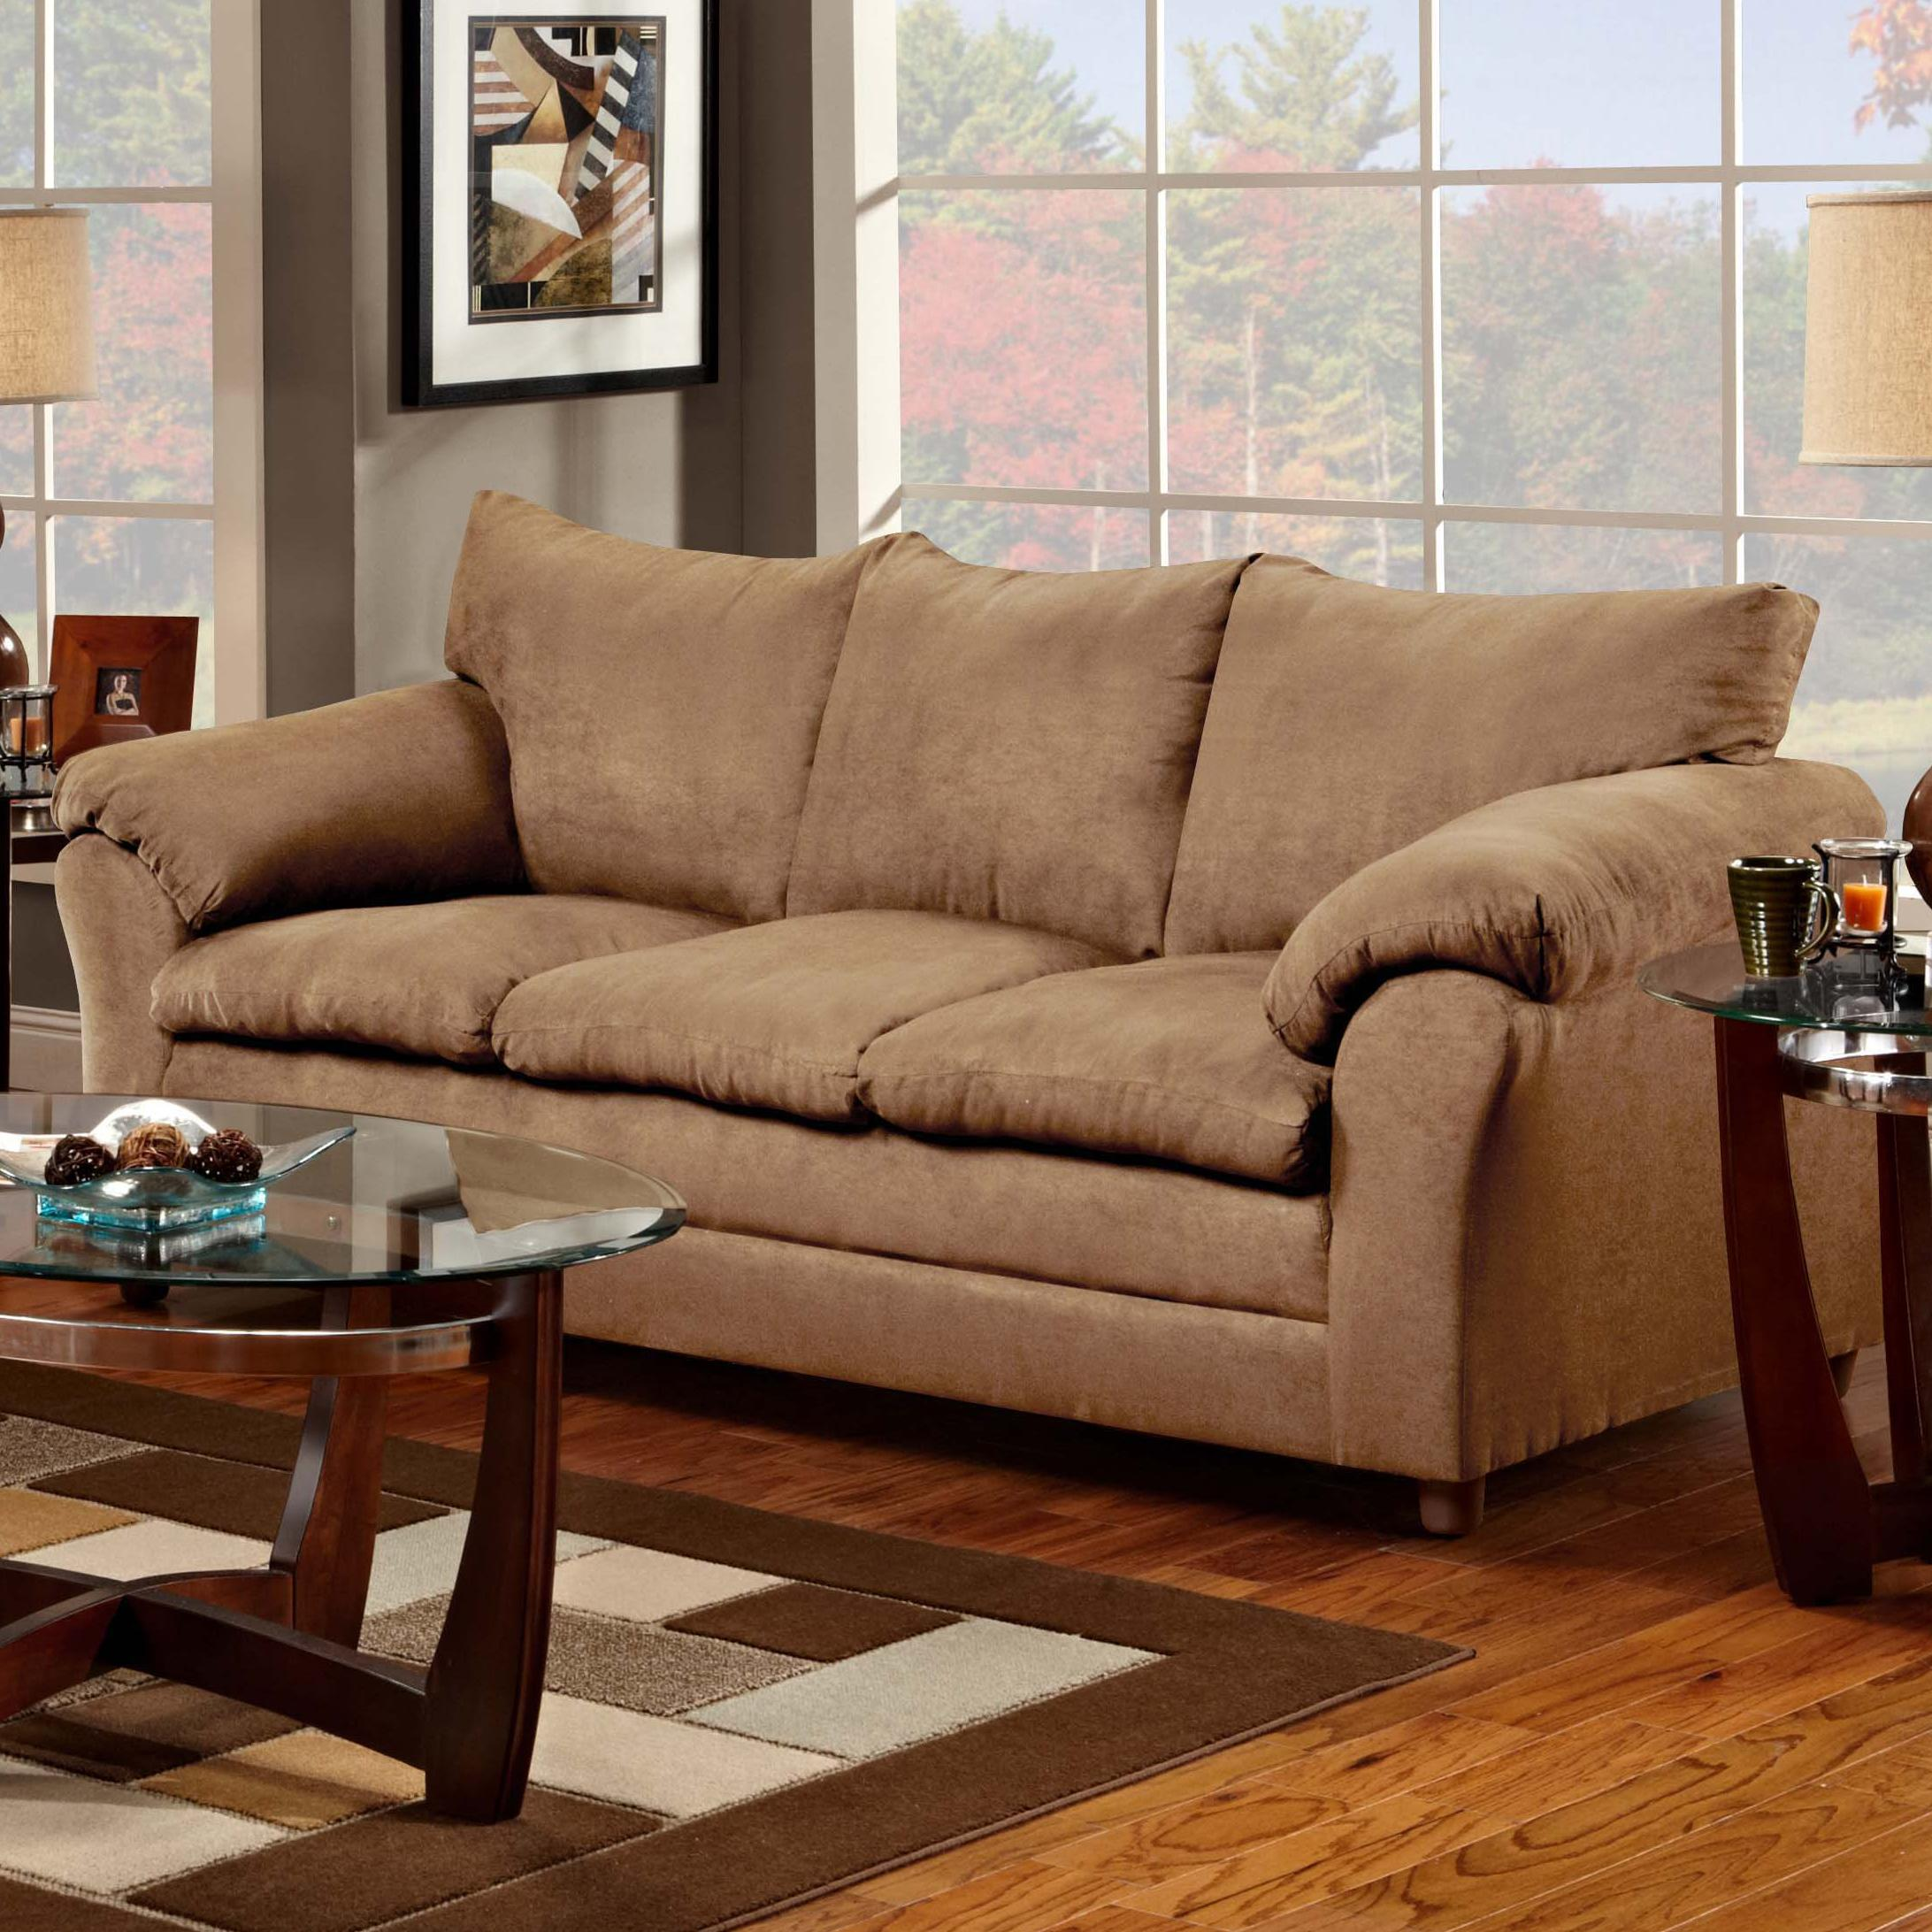 Washington Furniture 1150 Sofa - Item Number: 1150-S Taupe